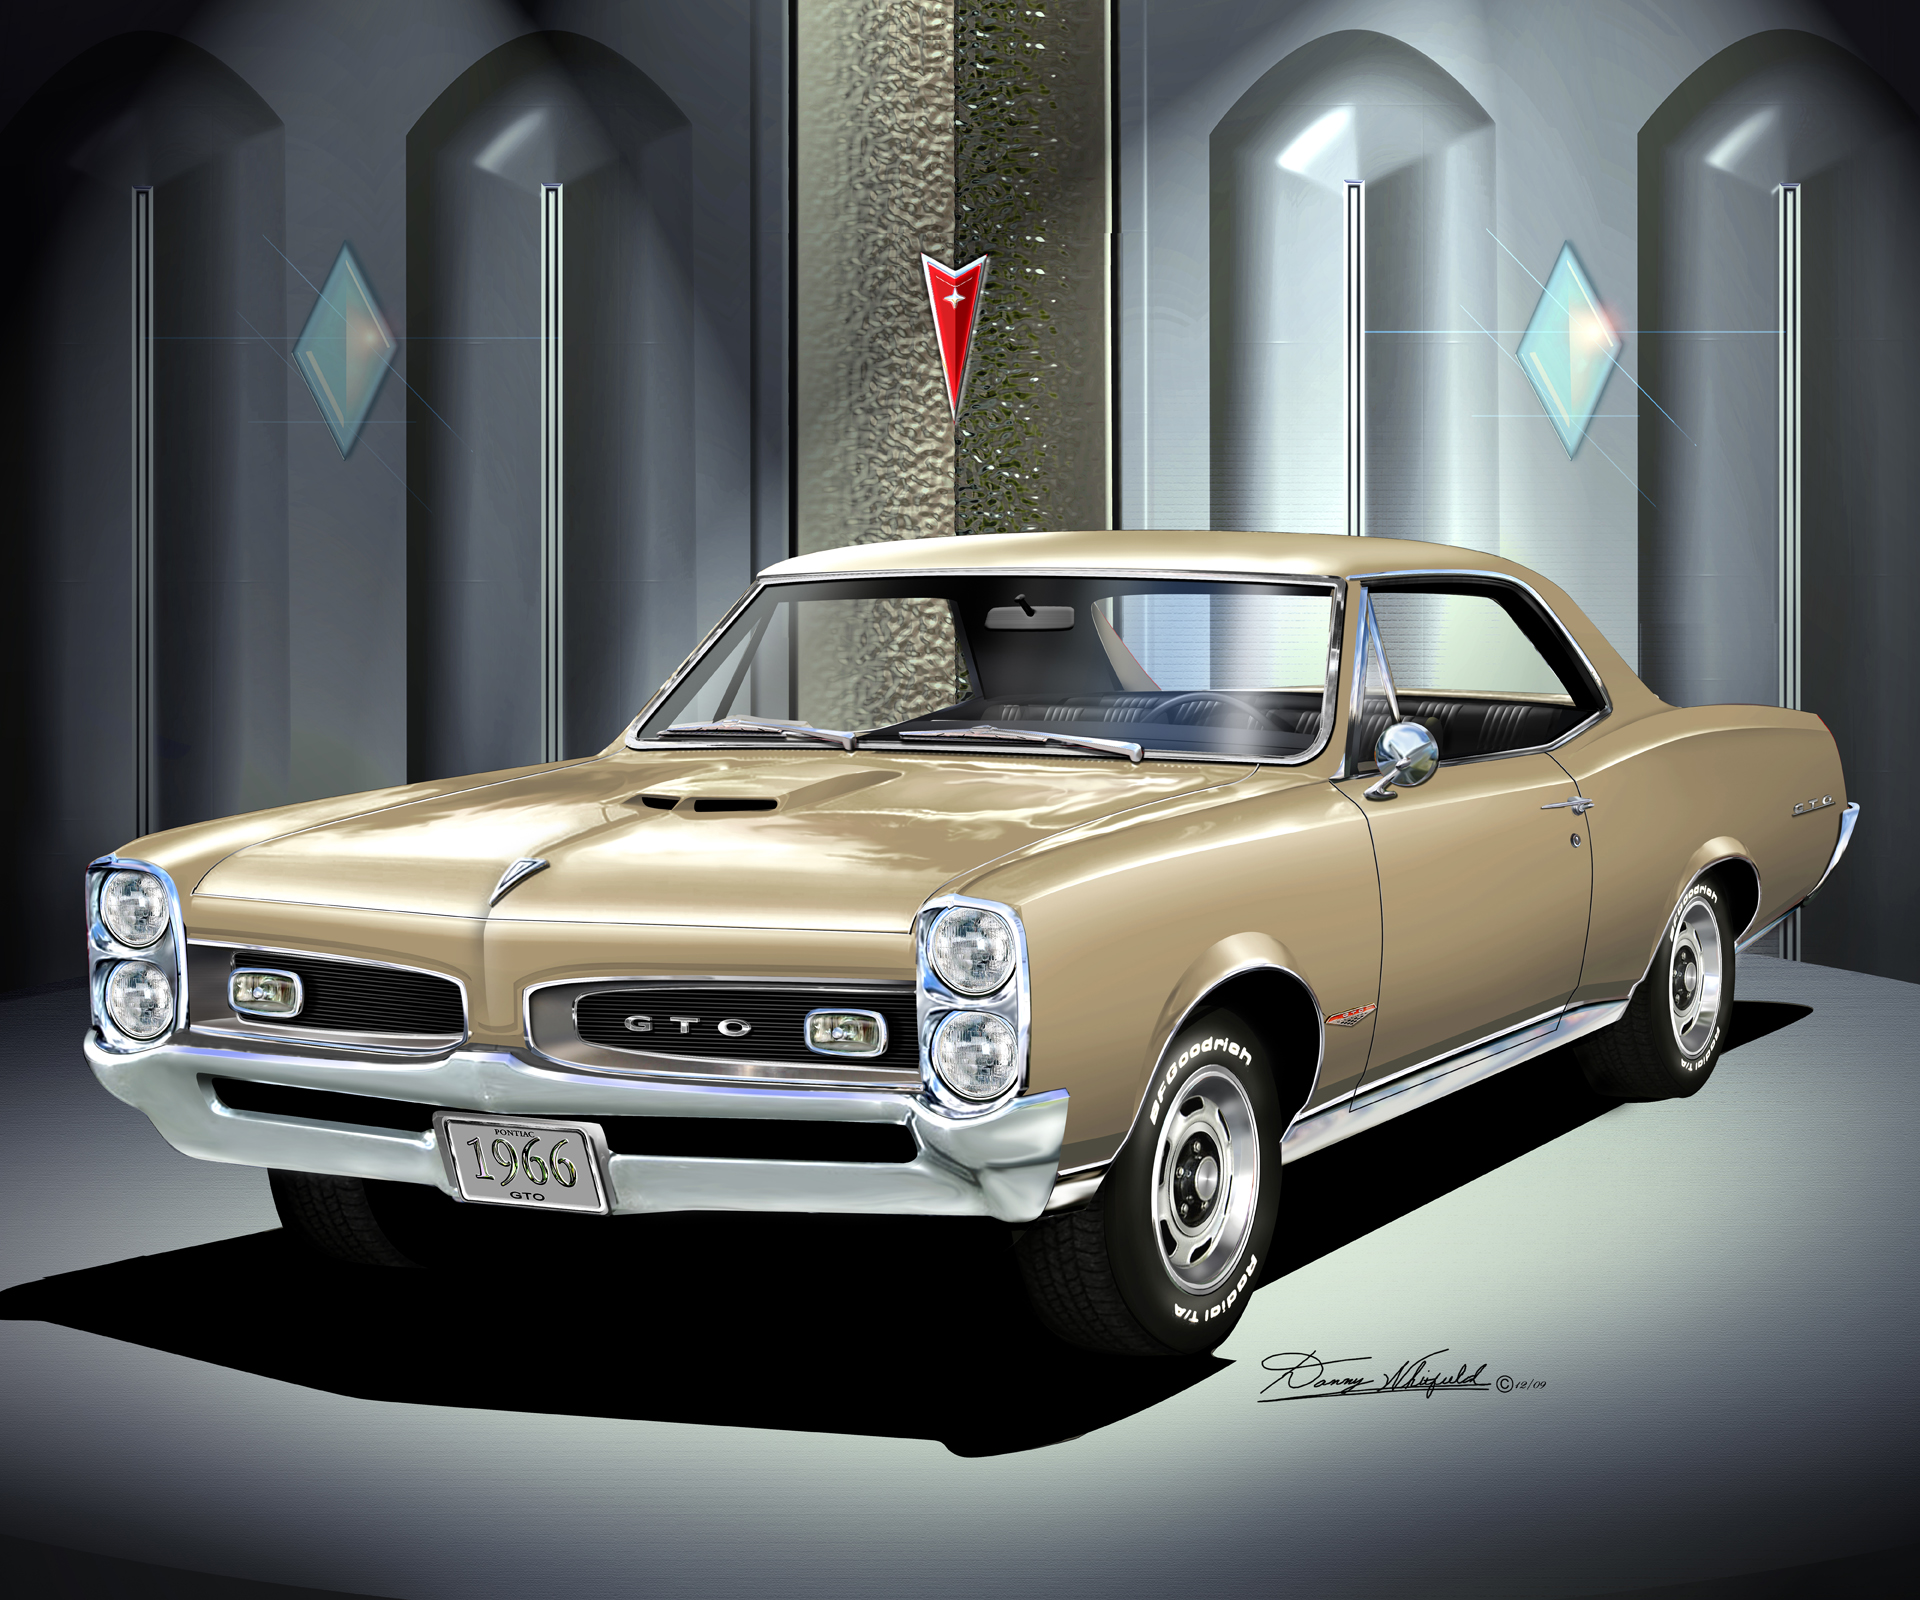 19661967 Ponitac GTO Fine art prints and posters by Danny Whitfield